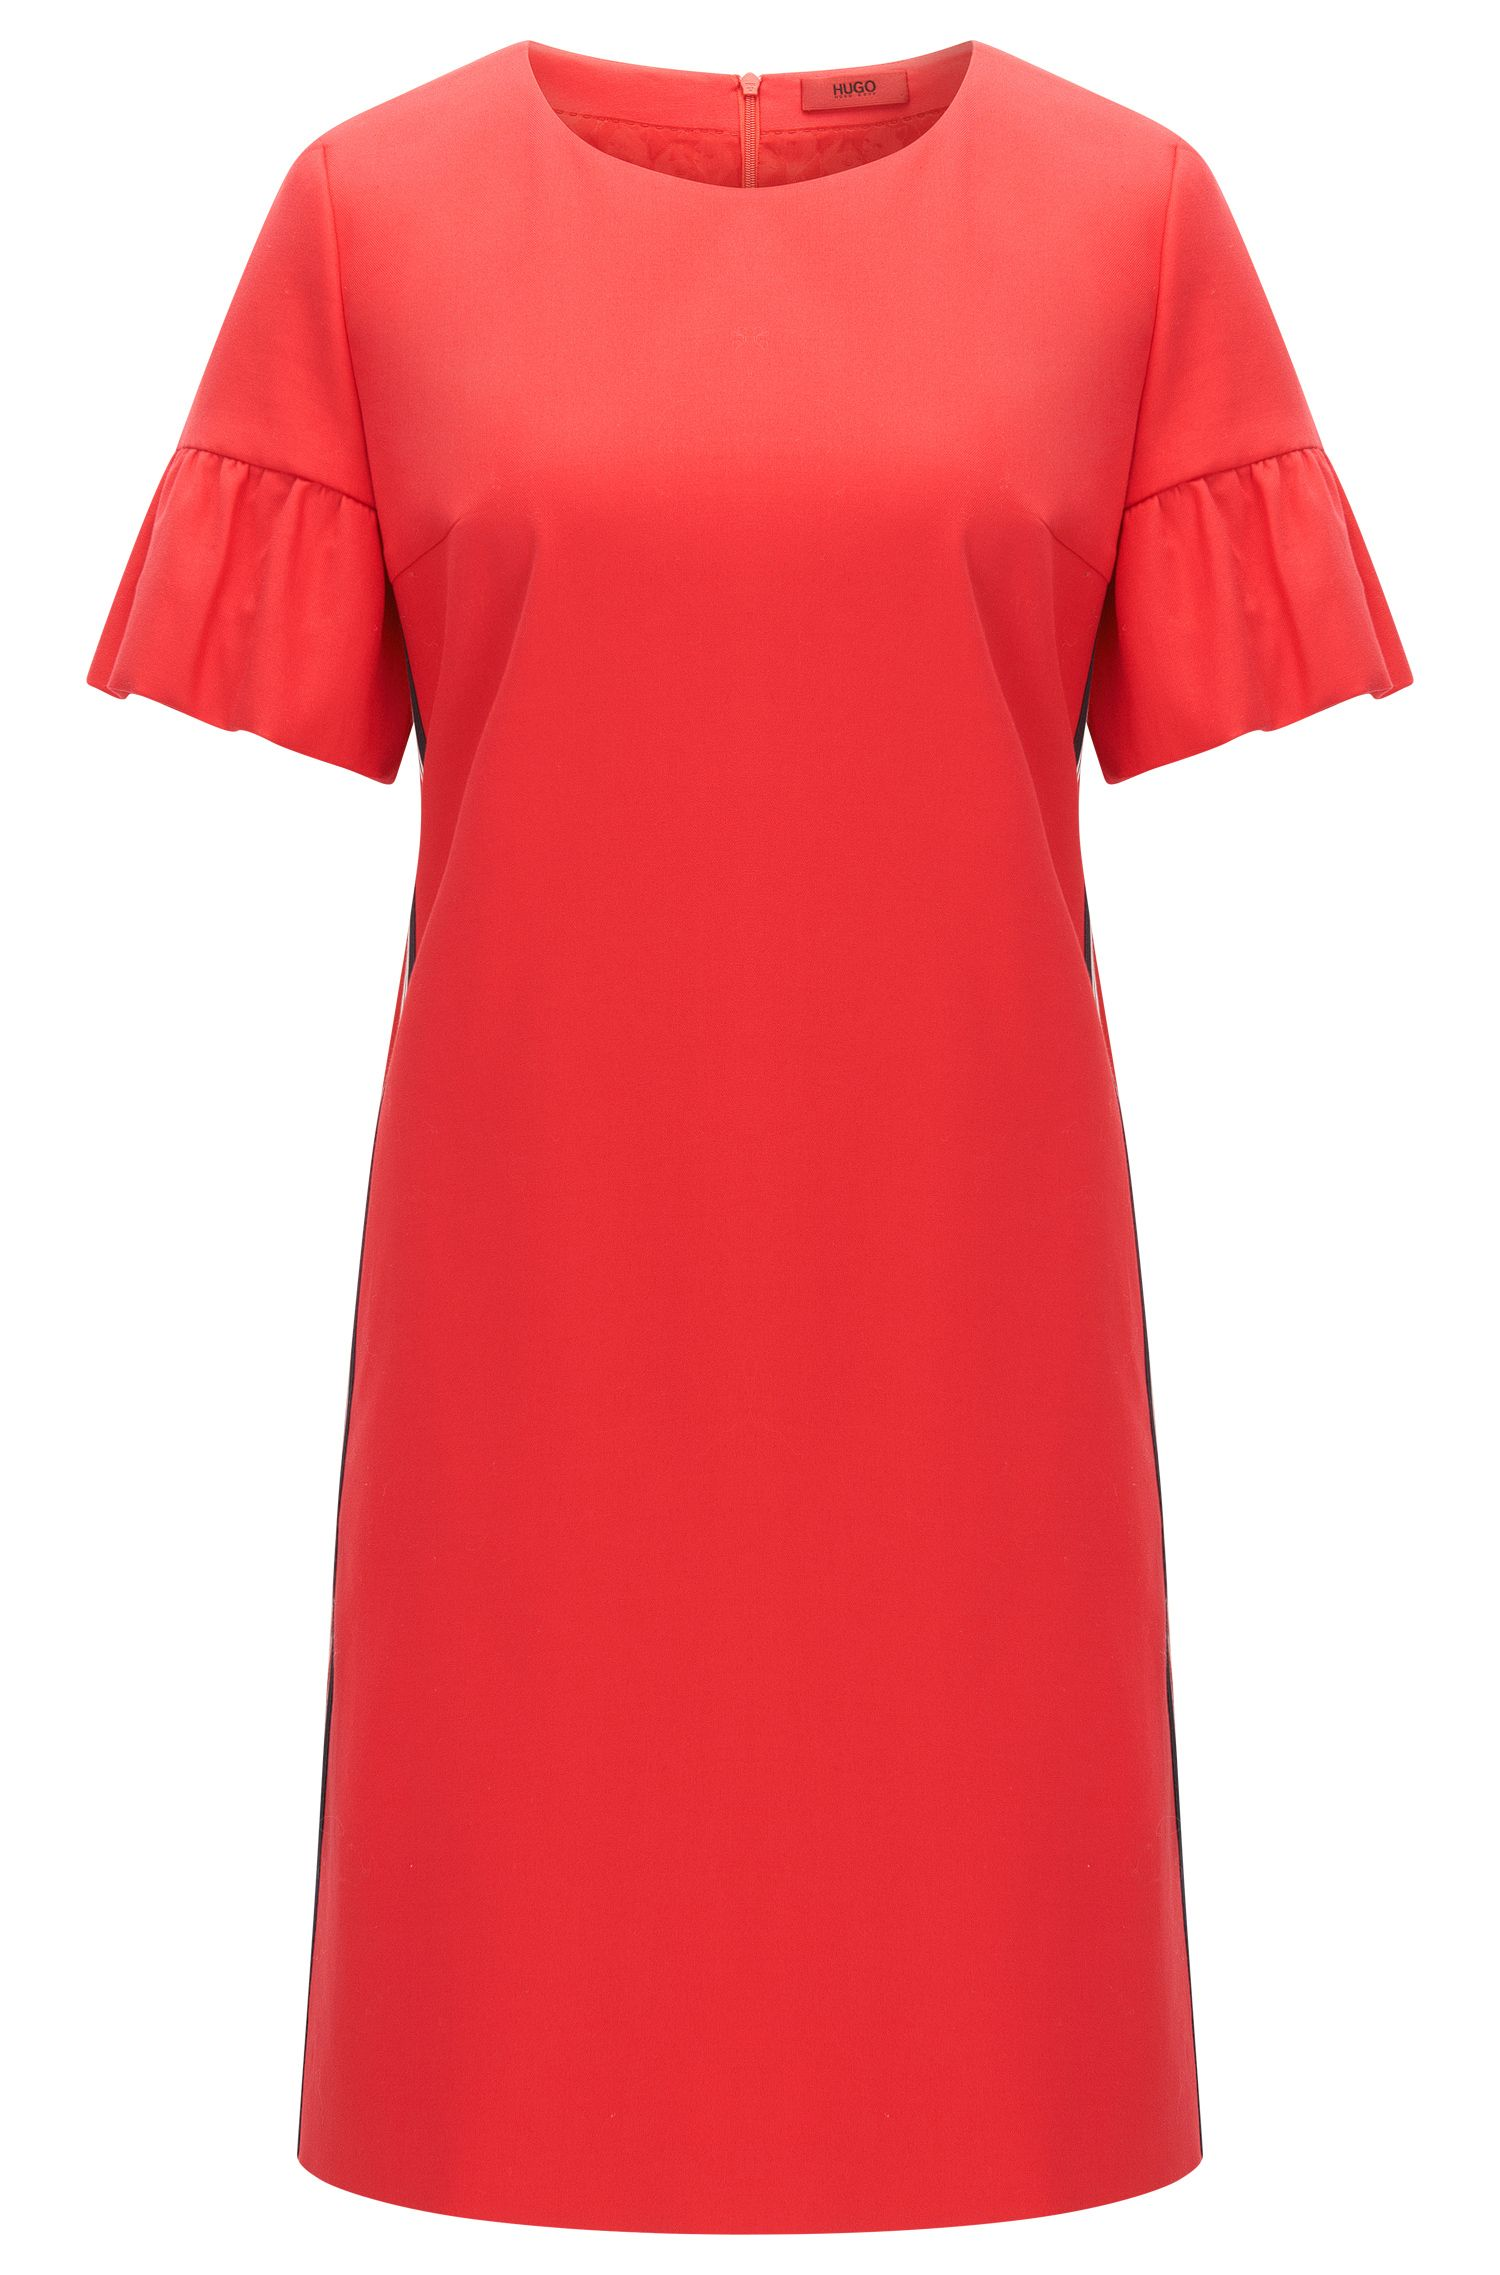 Relaxed-fit dress in stretch cotton with ruffle sleeves